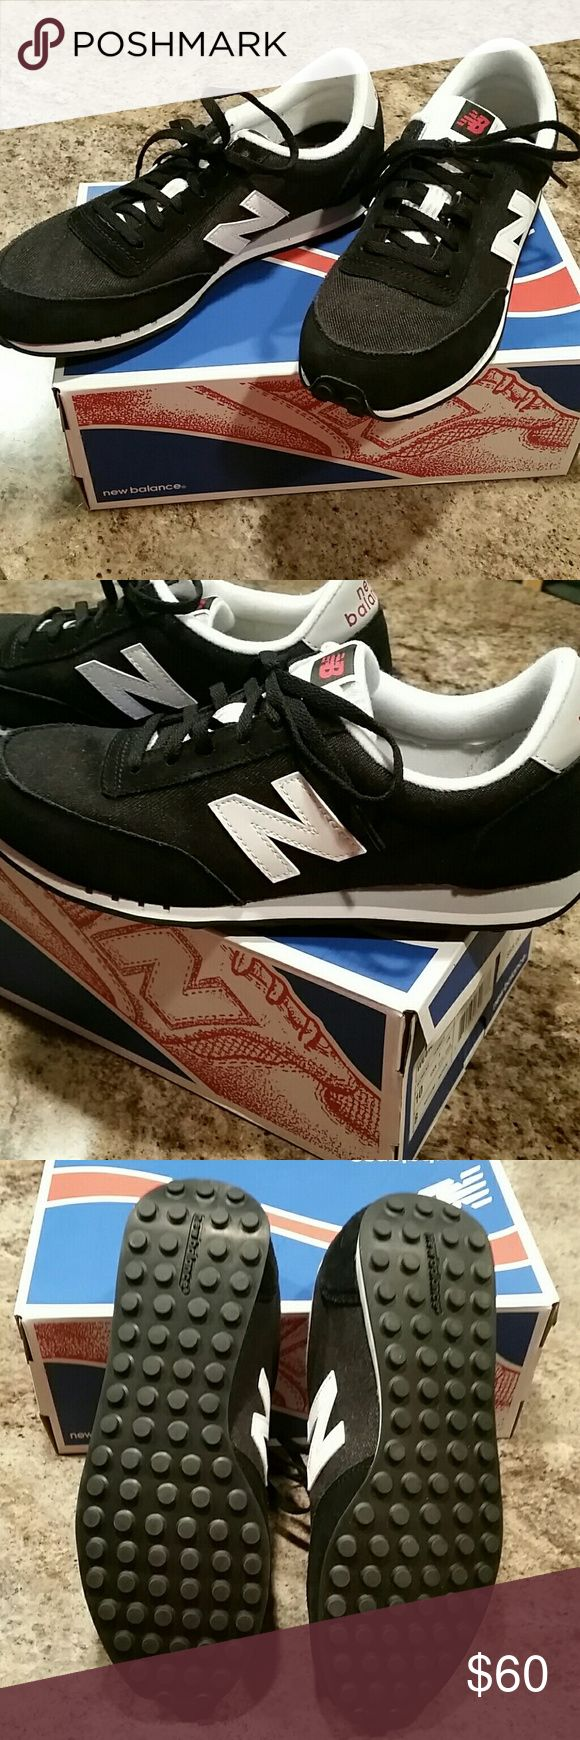 NIB Women's New Balance 410 sneakers shoes Awesome shoes! I discount bundles! Make me an offer! New Balance Shoes Sneakers